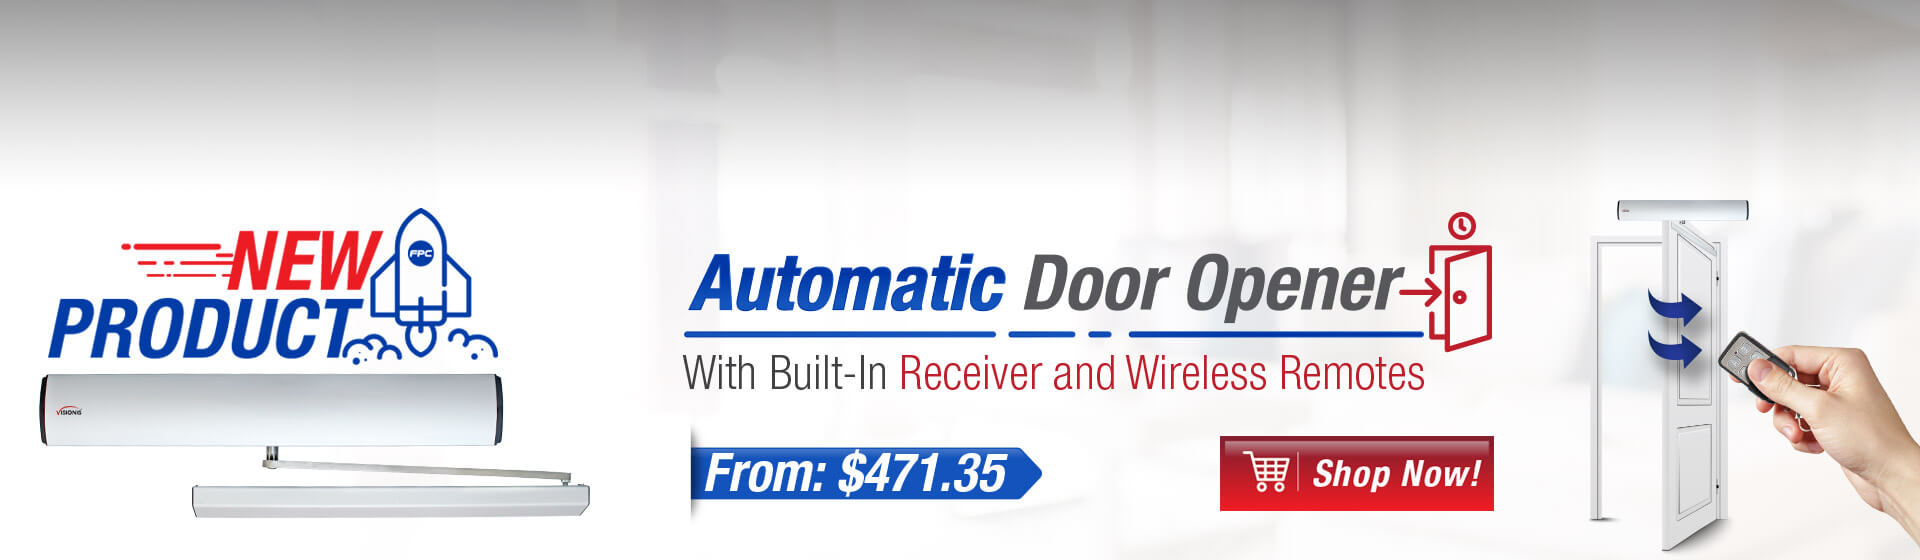 Banner Atuomatic Door opener